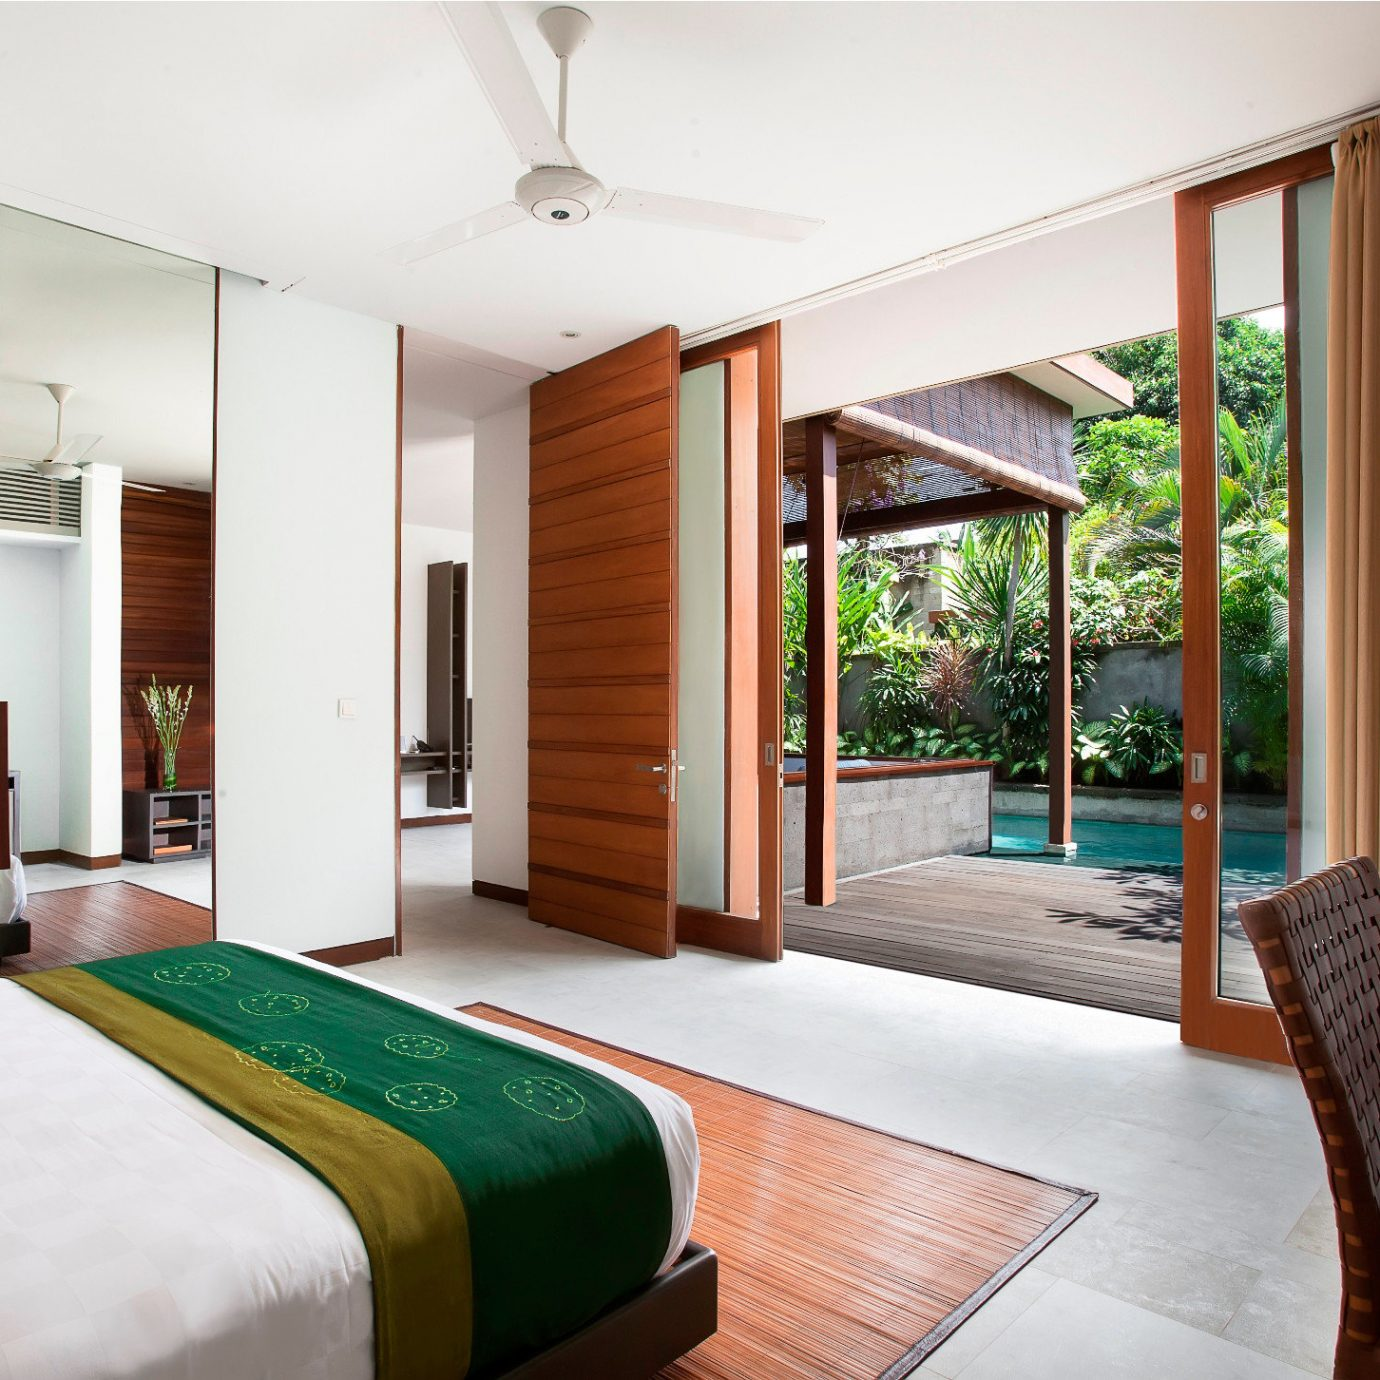 Bath Bedroom Luxury Patio property house condominium home Suite green Villa cottage Resort living room